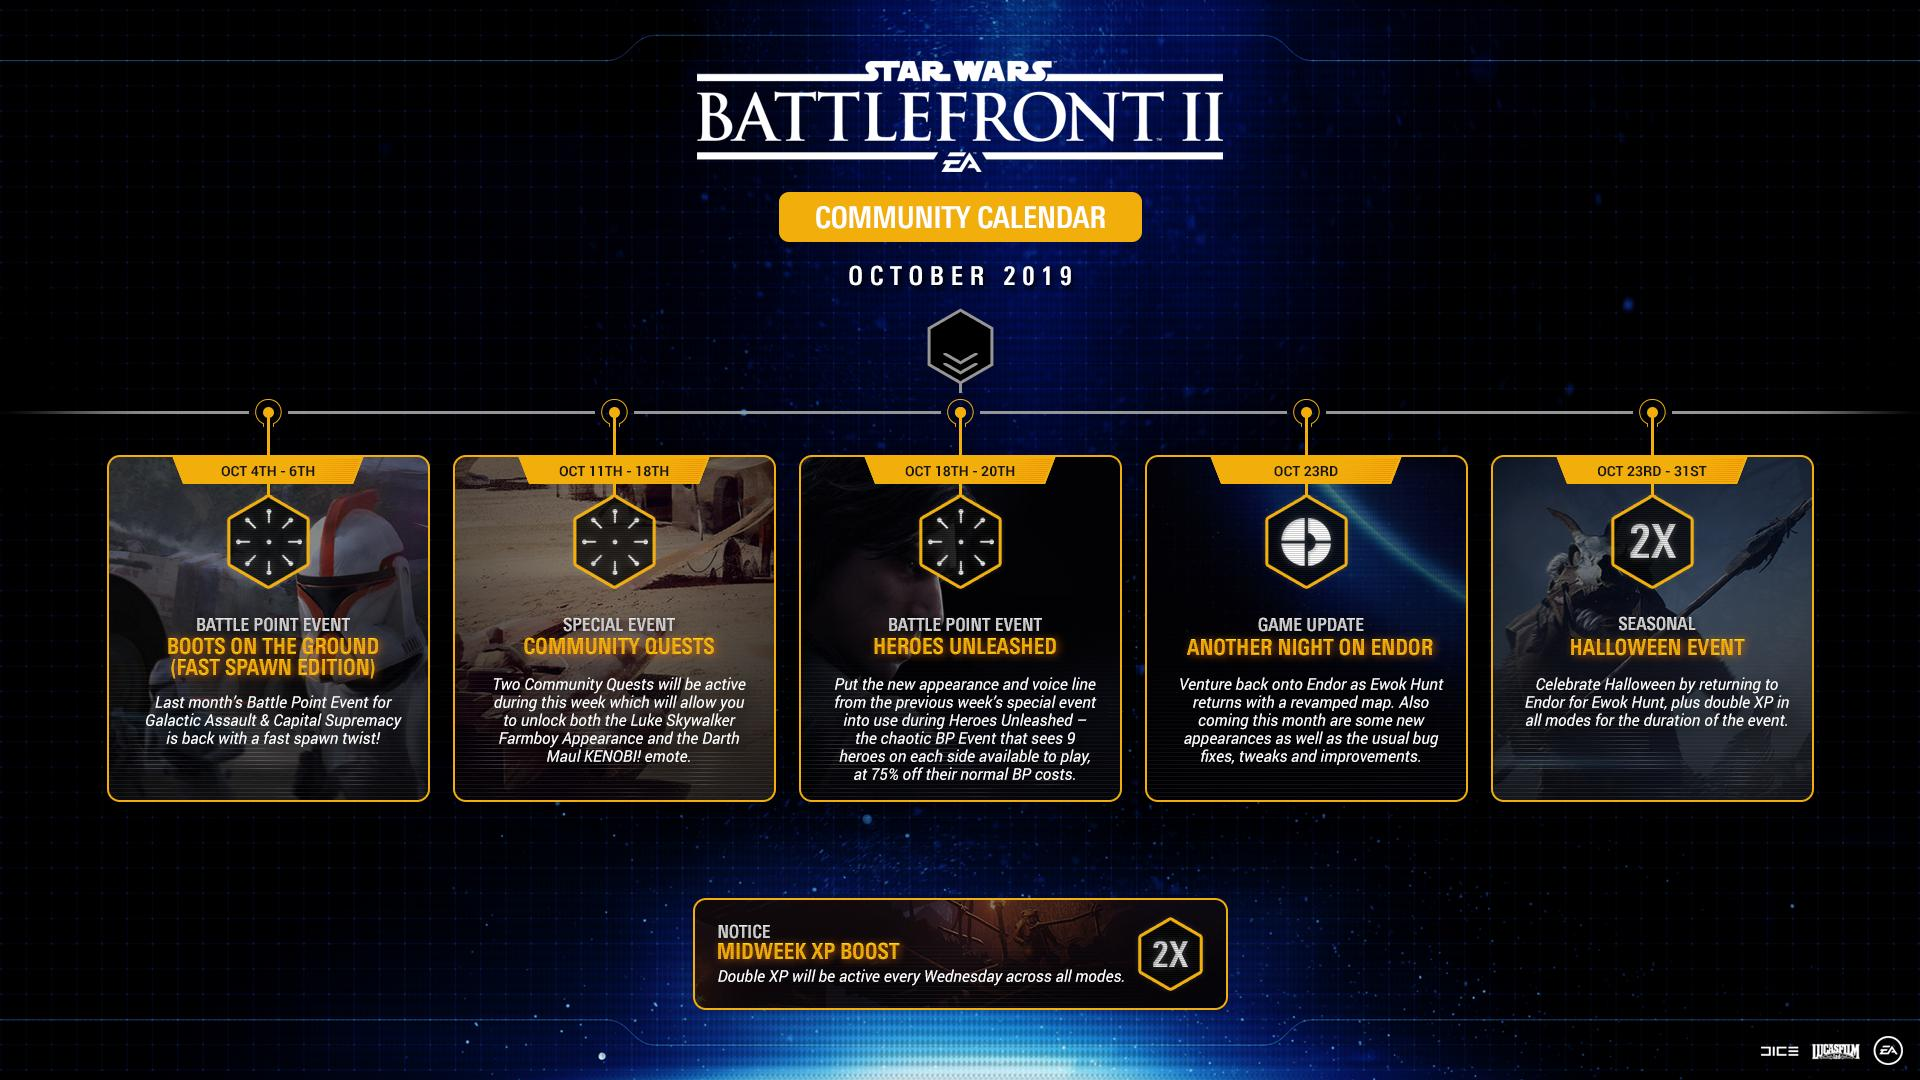 Ea Star Wars On Twitter Check Out The October Community Calendar For Starwarsbattlefrontii